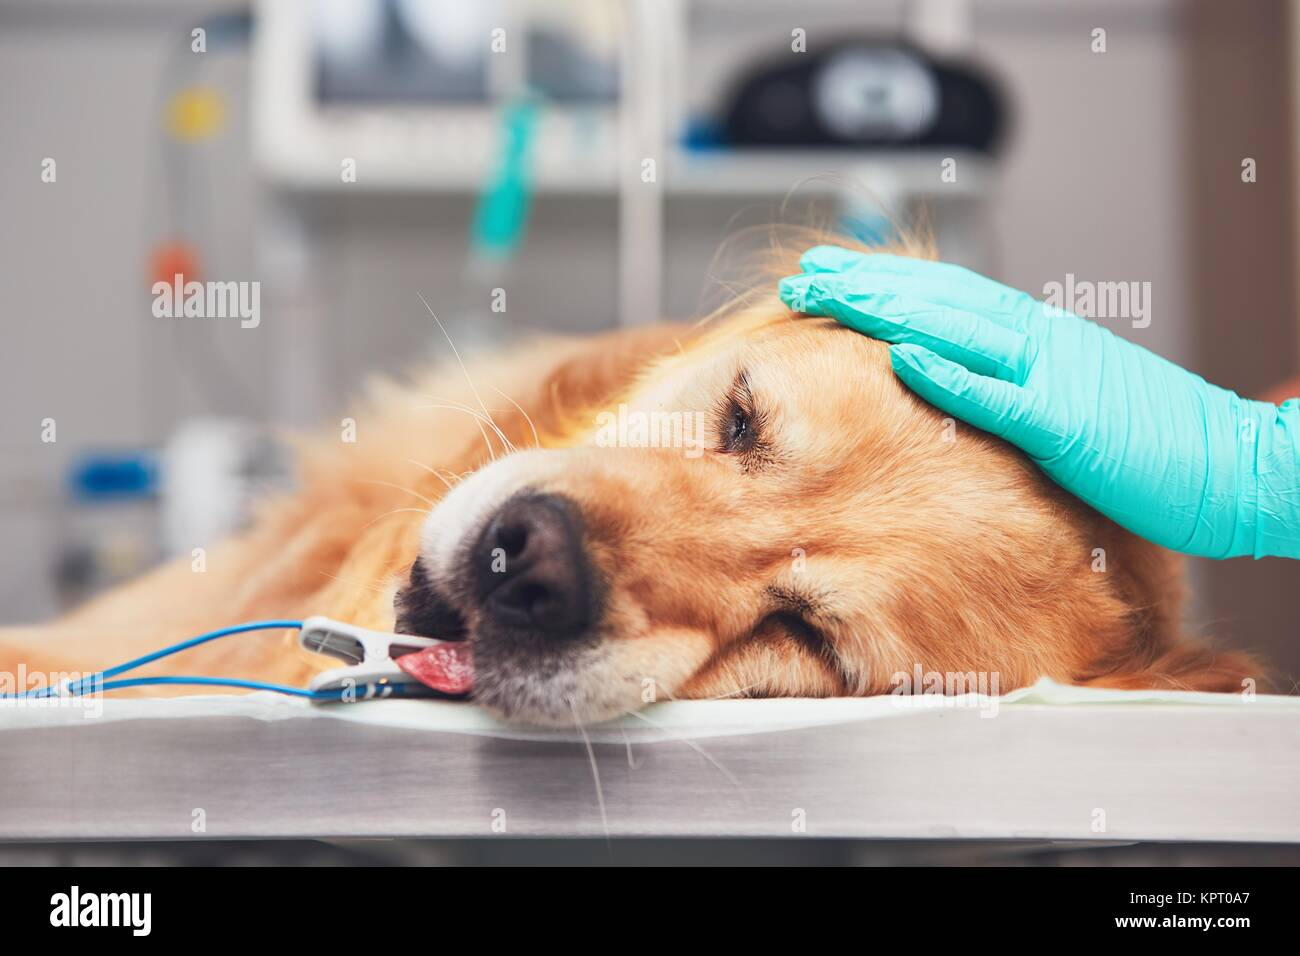 Dog in the animal hospital. Golden retriever lying on the operating room before surgery. - Stock Image